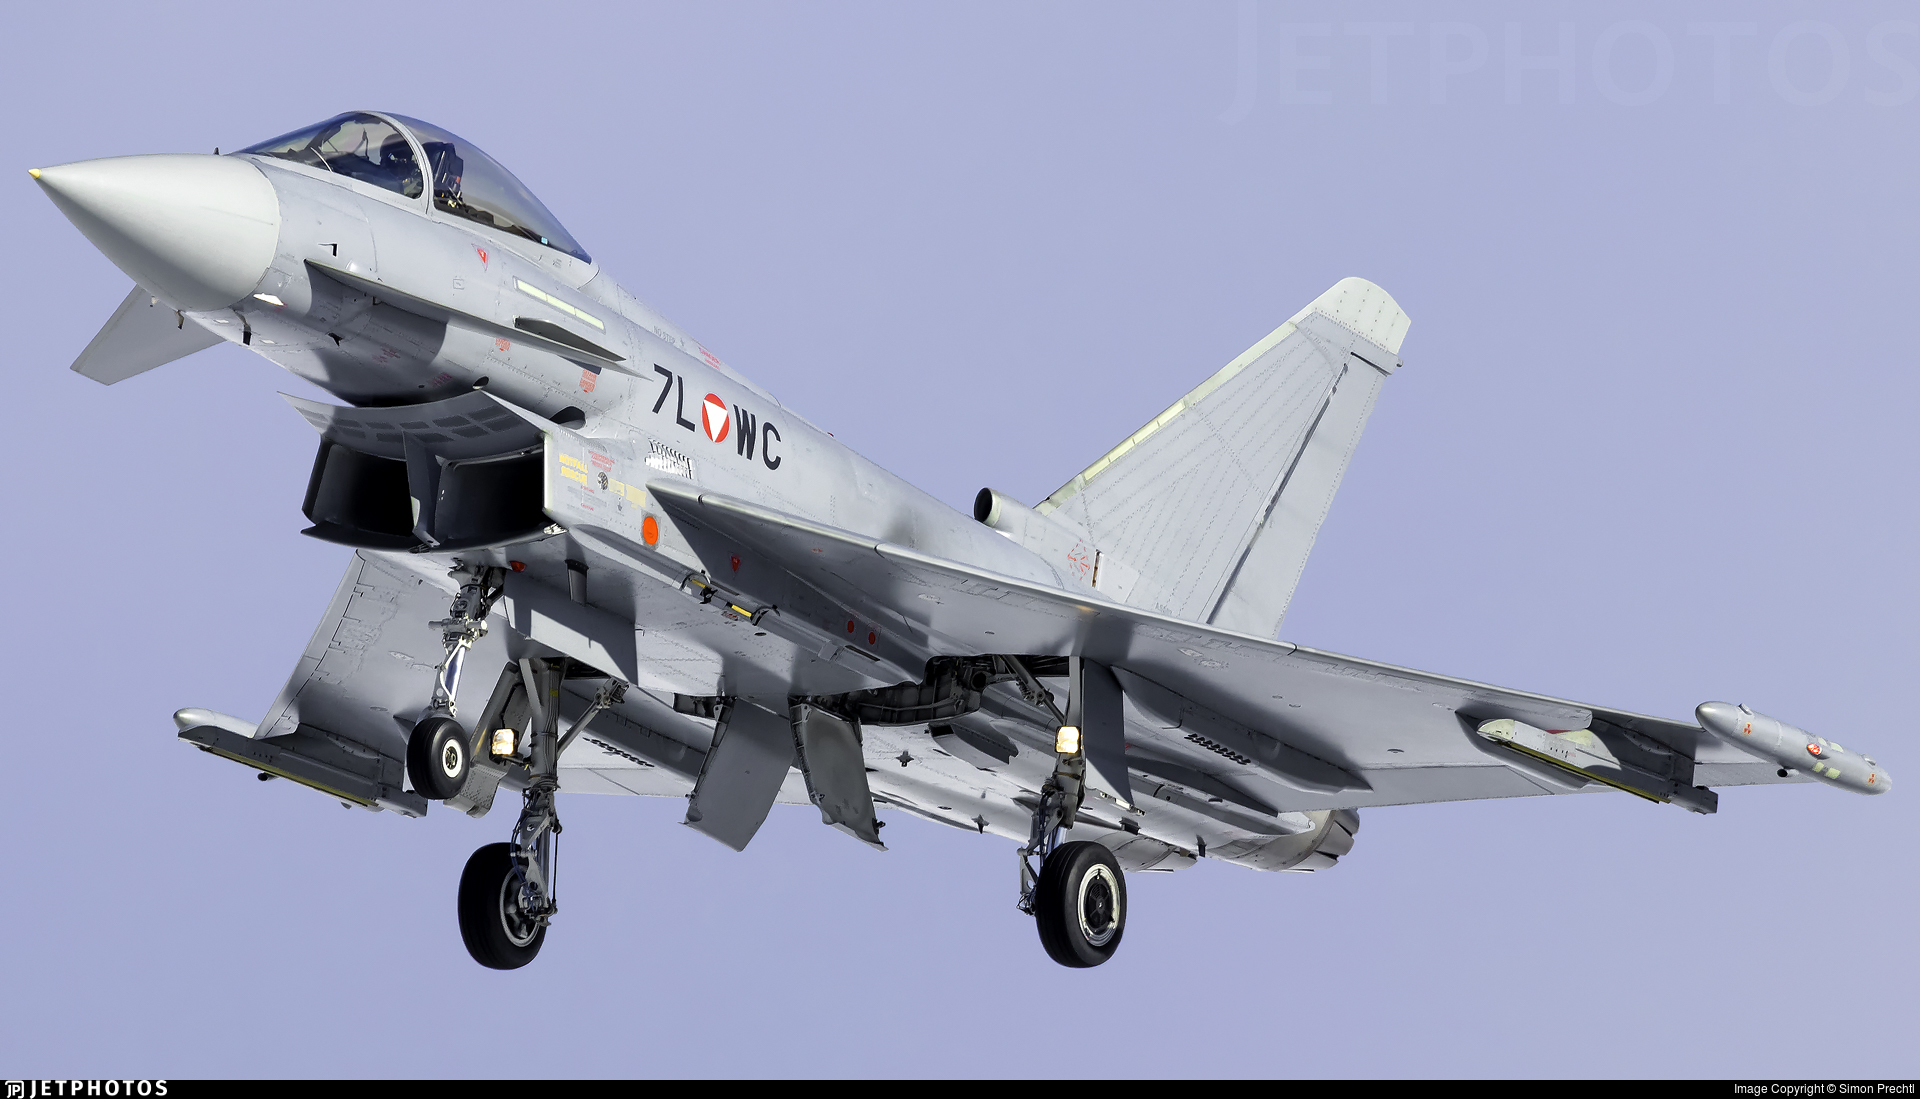 7L-WC - Eurofighter Typhoon EF2000 - Austria - Air Force